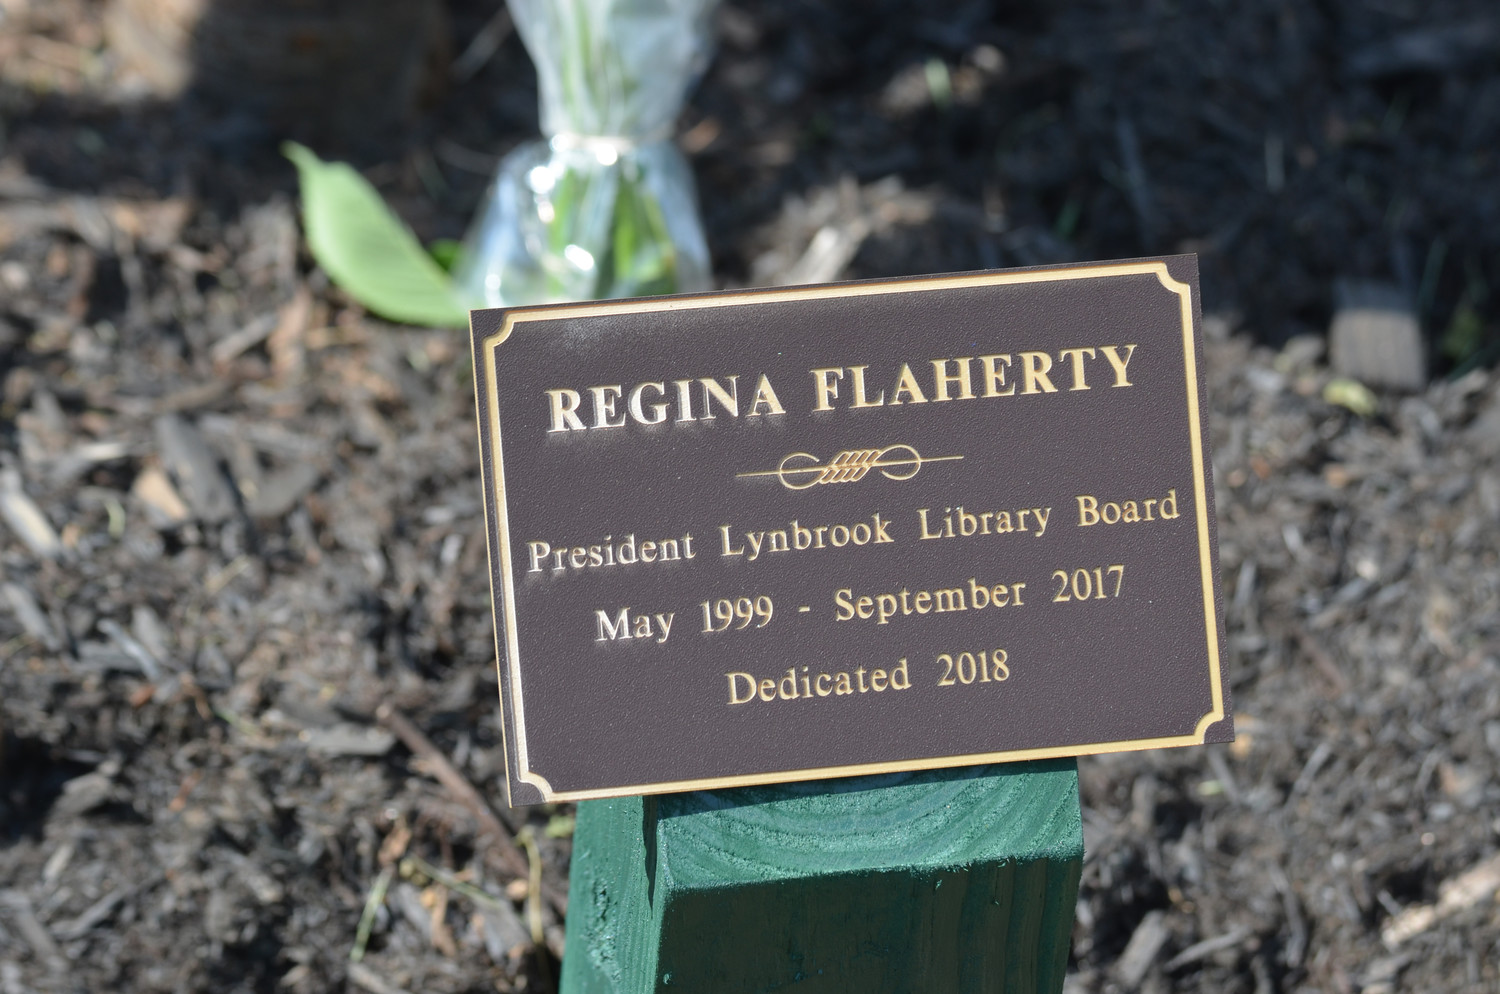 A plaque and tree were dedicated to late former Lynbrook Library Board President Regina Flaherty at a special ceremony.